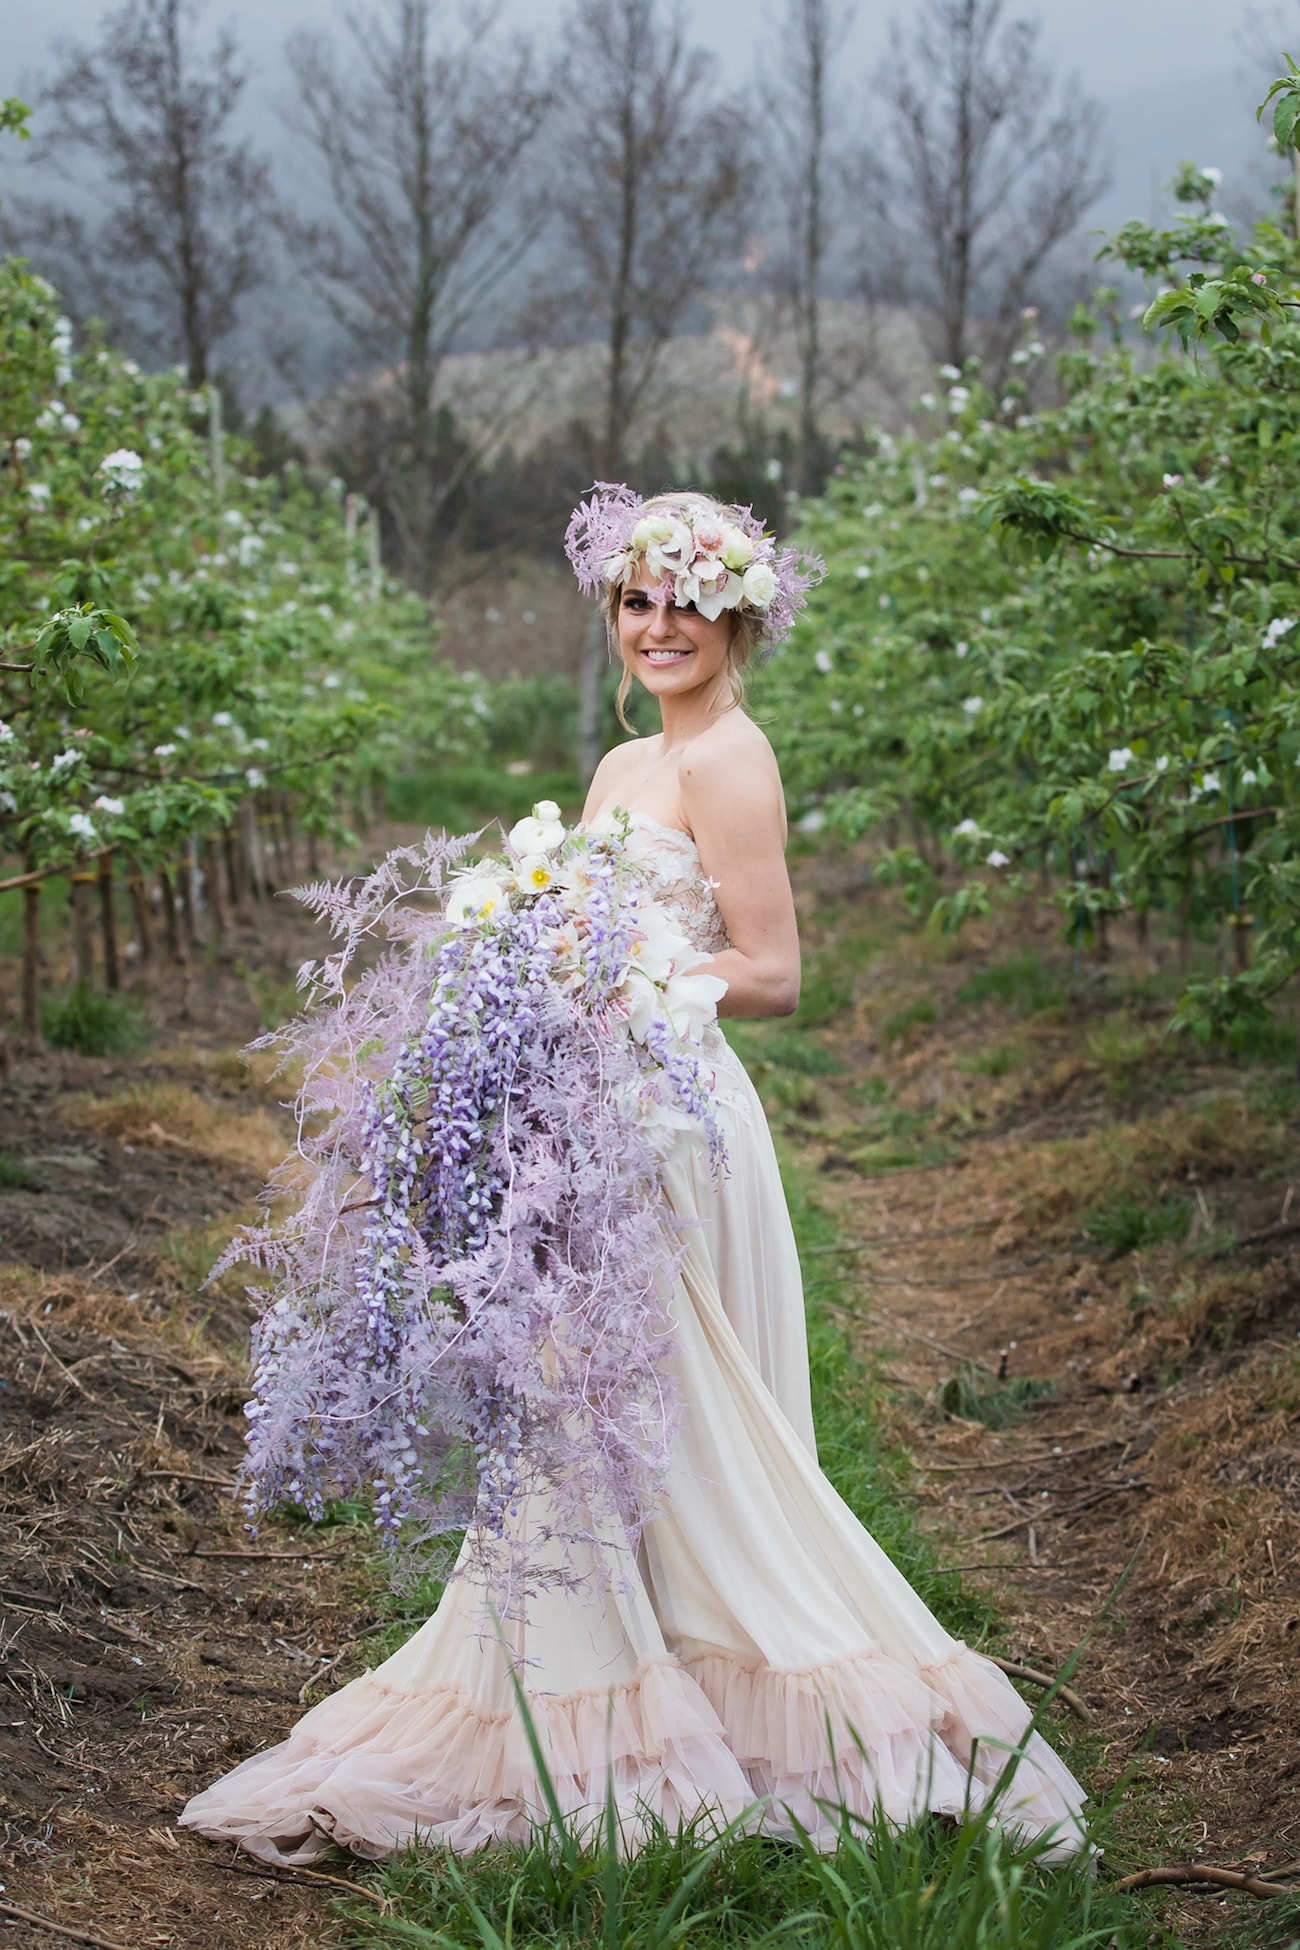 Spring Blossom Bridal Shoot | Image: Sulet Fourie